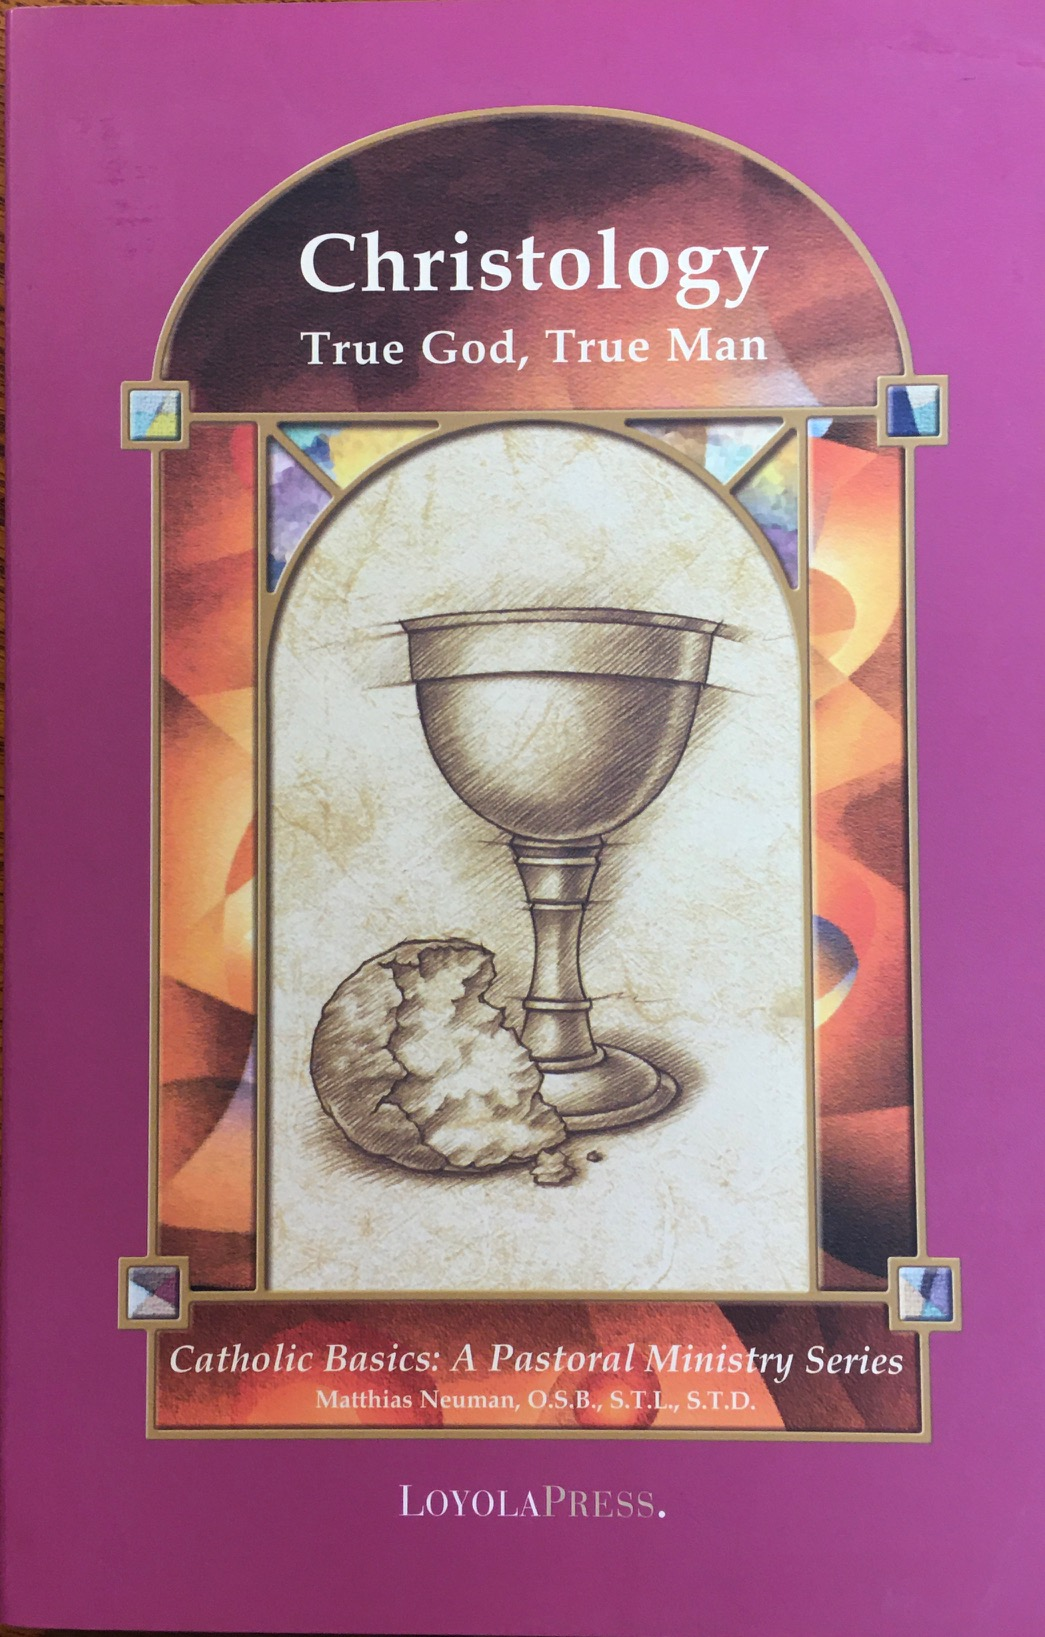 Image for Christology: True God, True Man (Catholic Basics: A Pastoral Ministry Series)